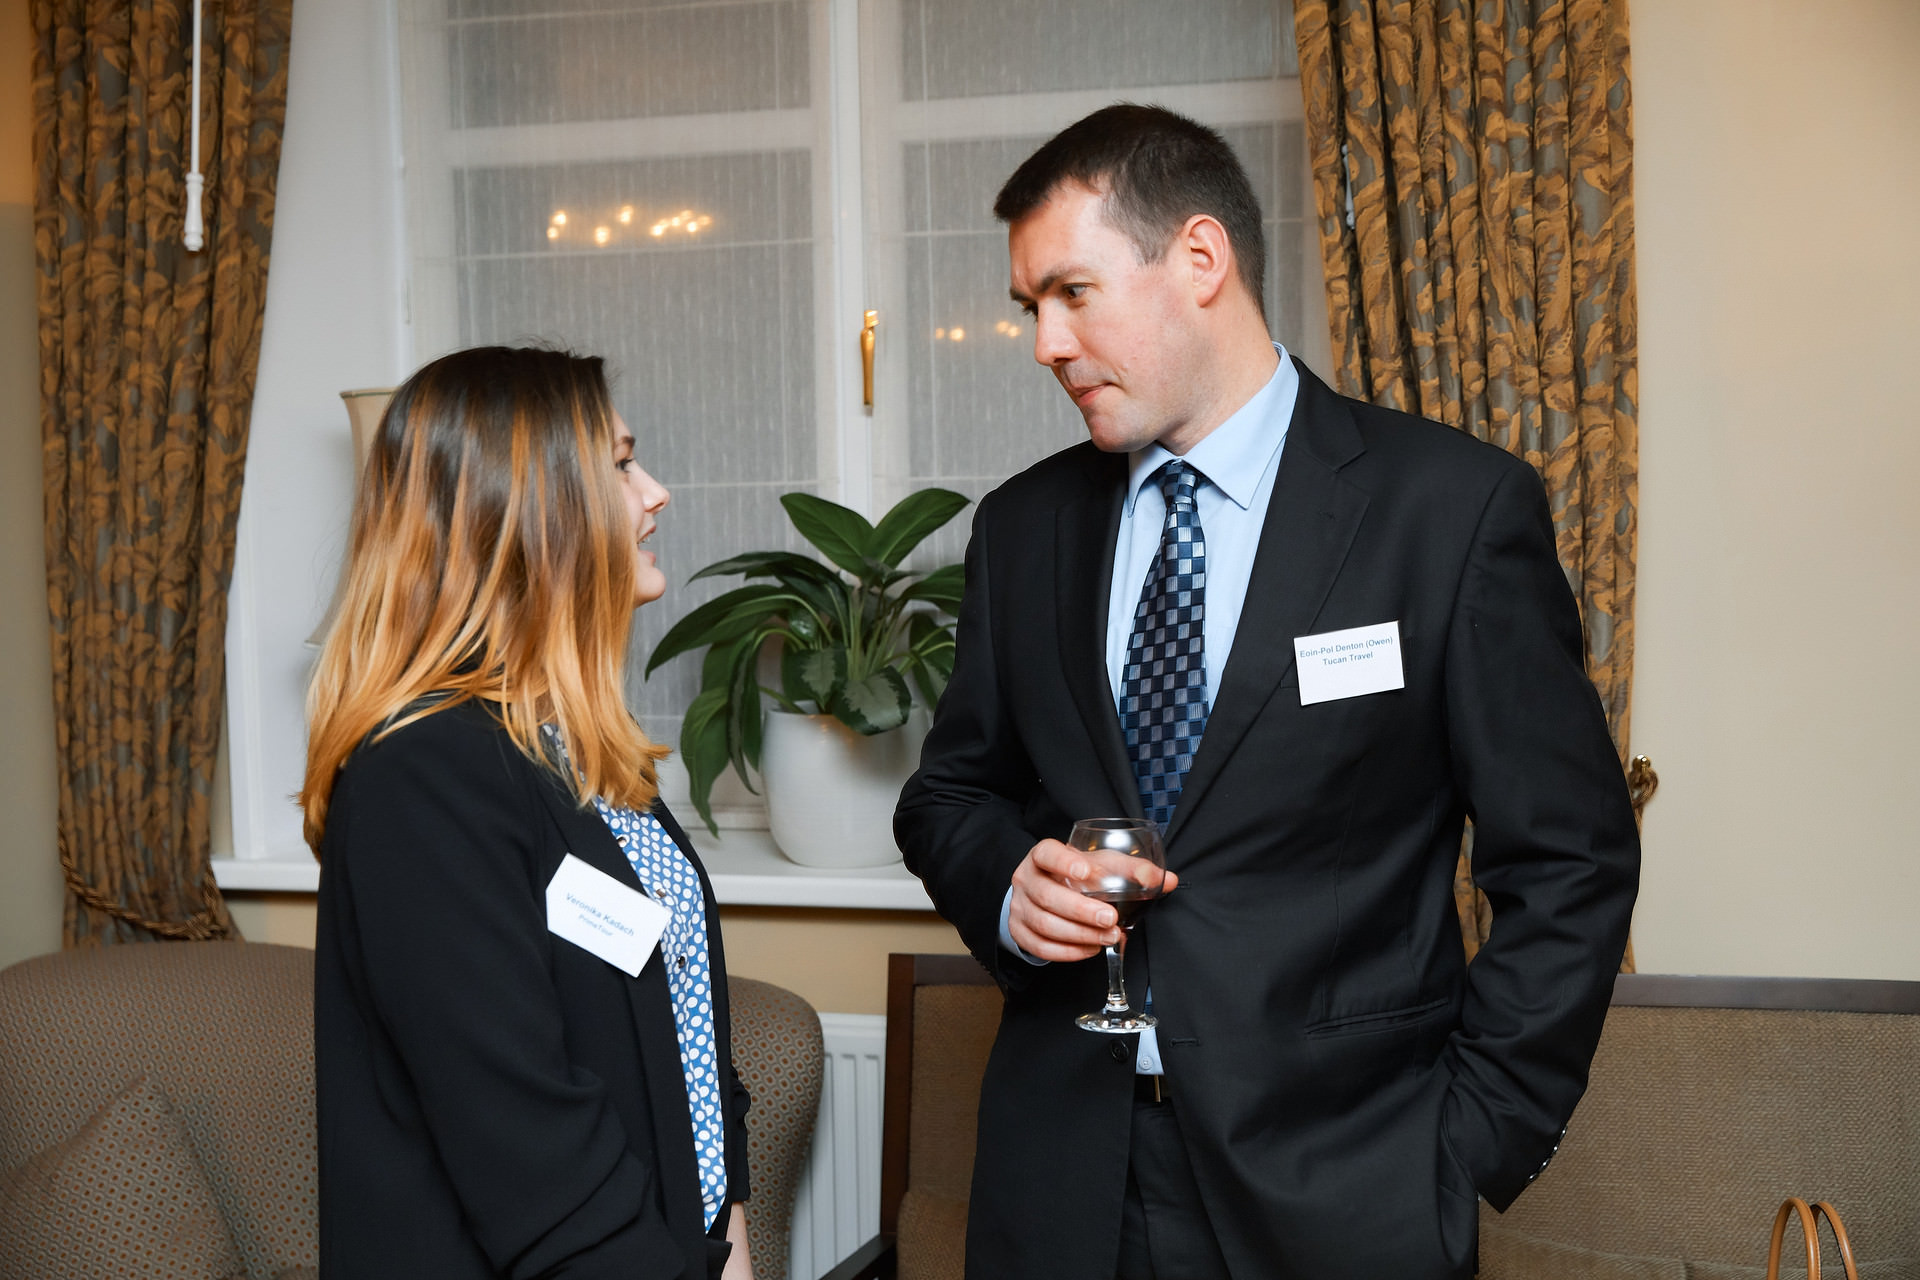 Business dinner at the British Embassy